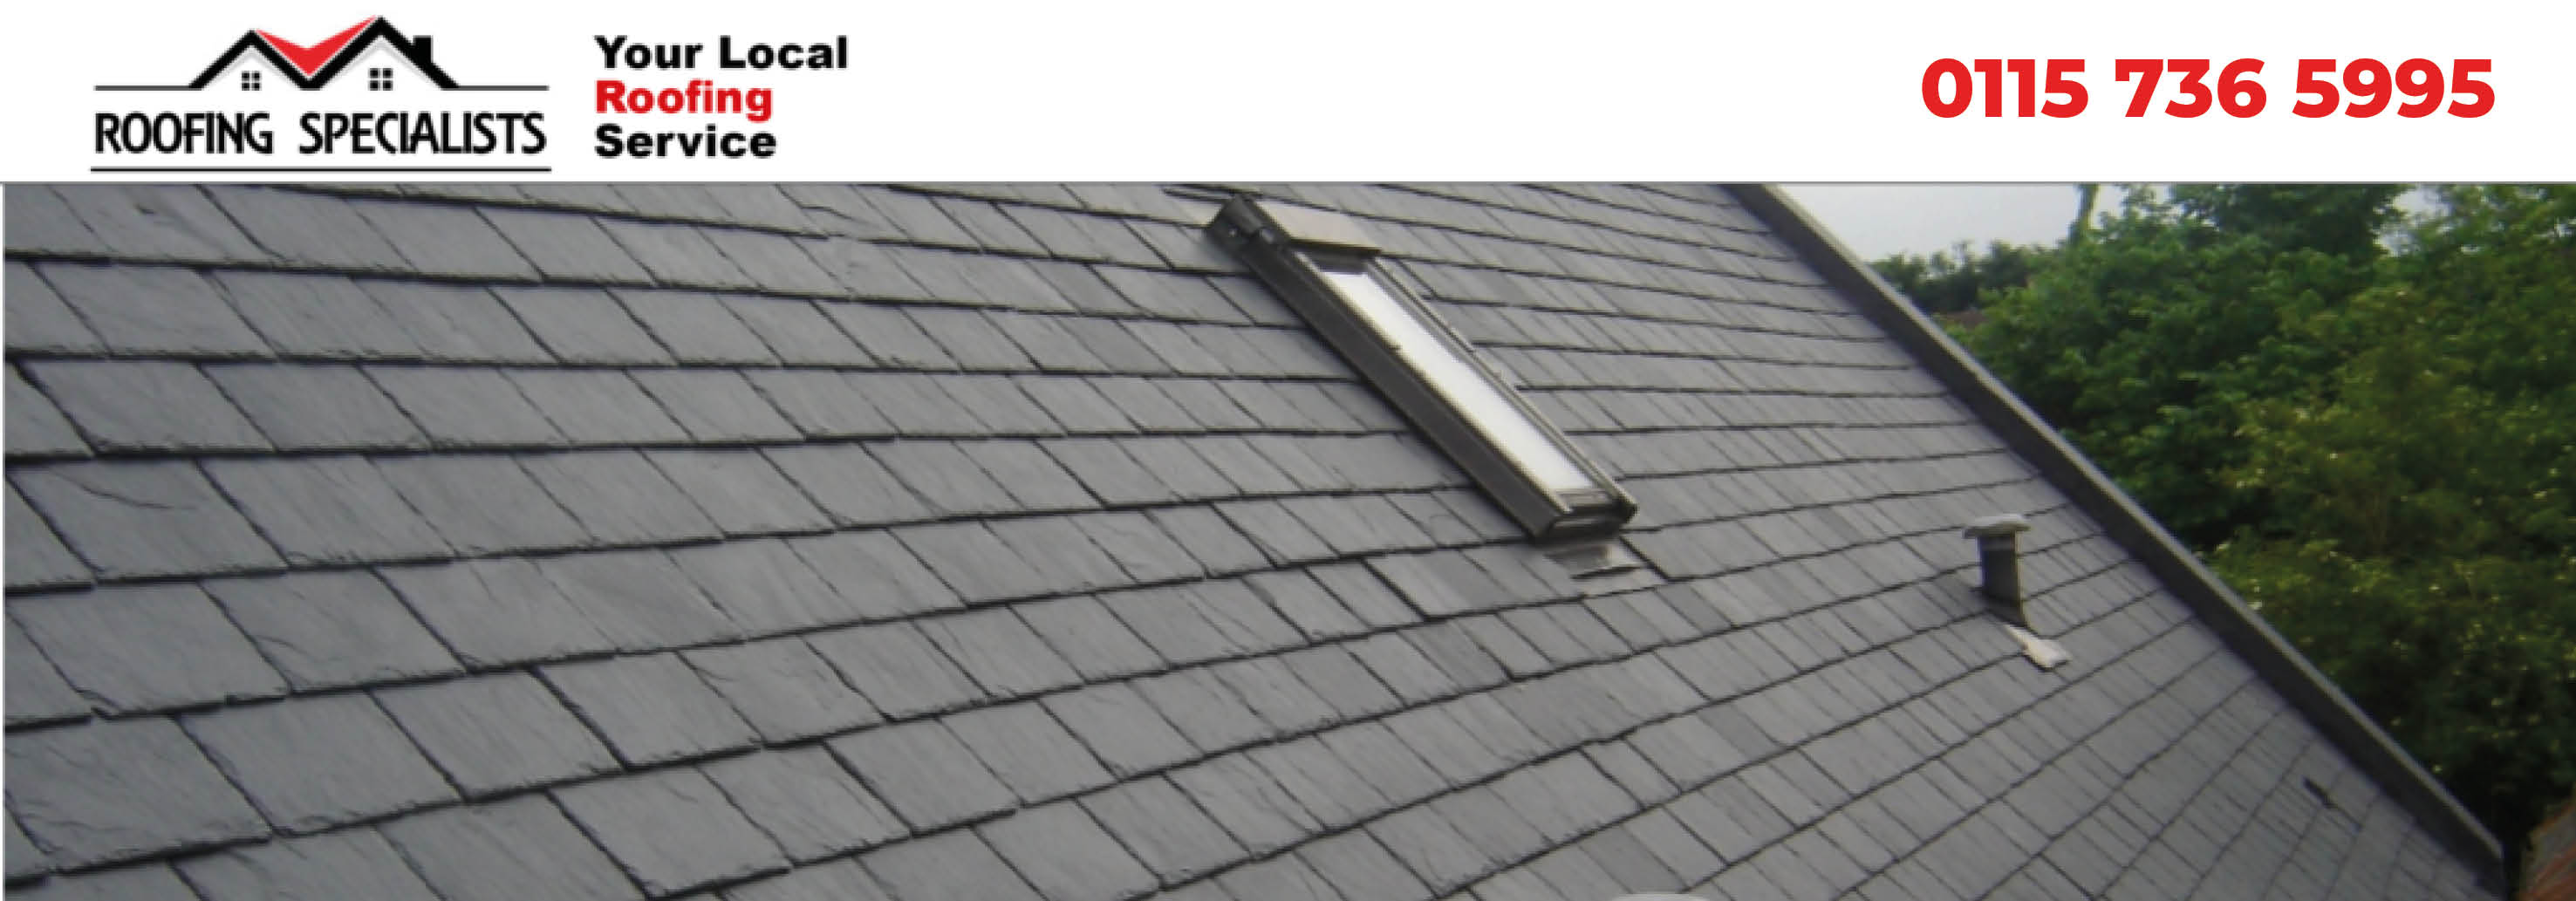 domestic roofing nottingham image header